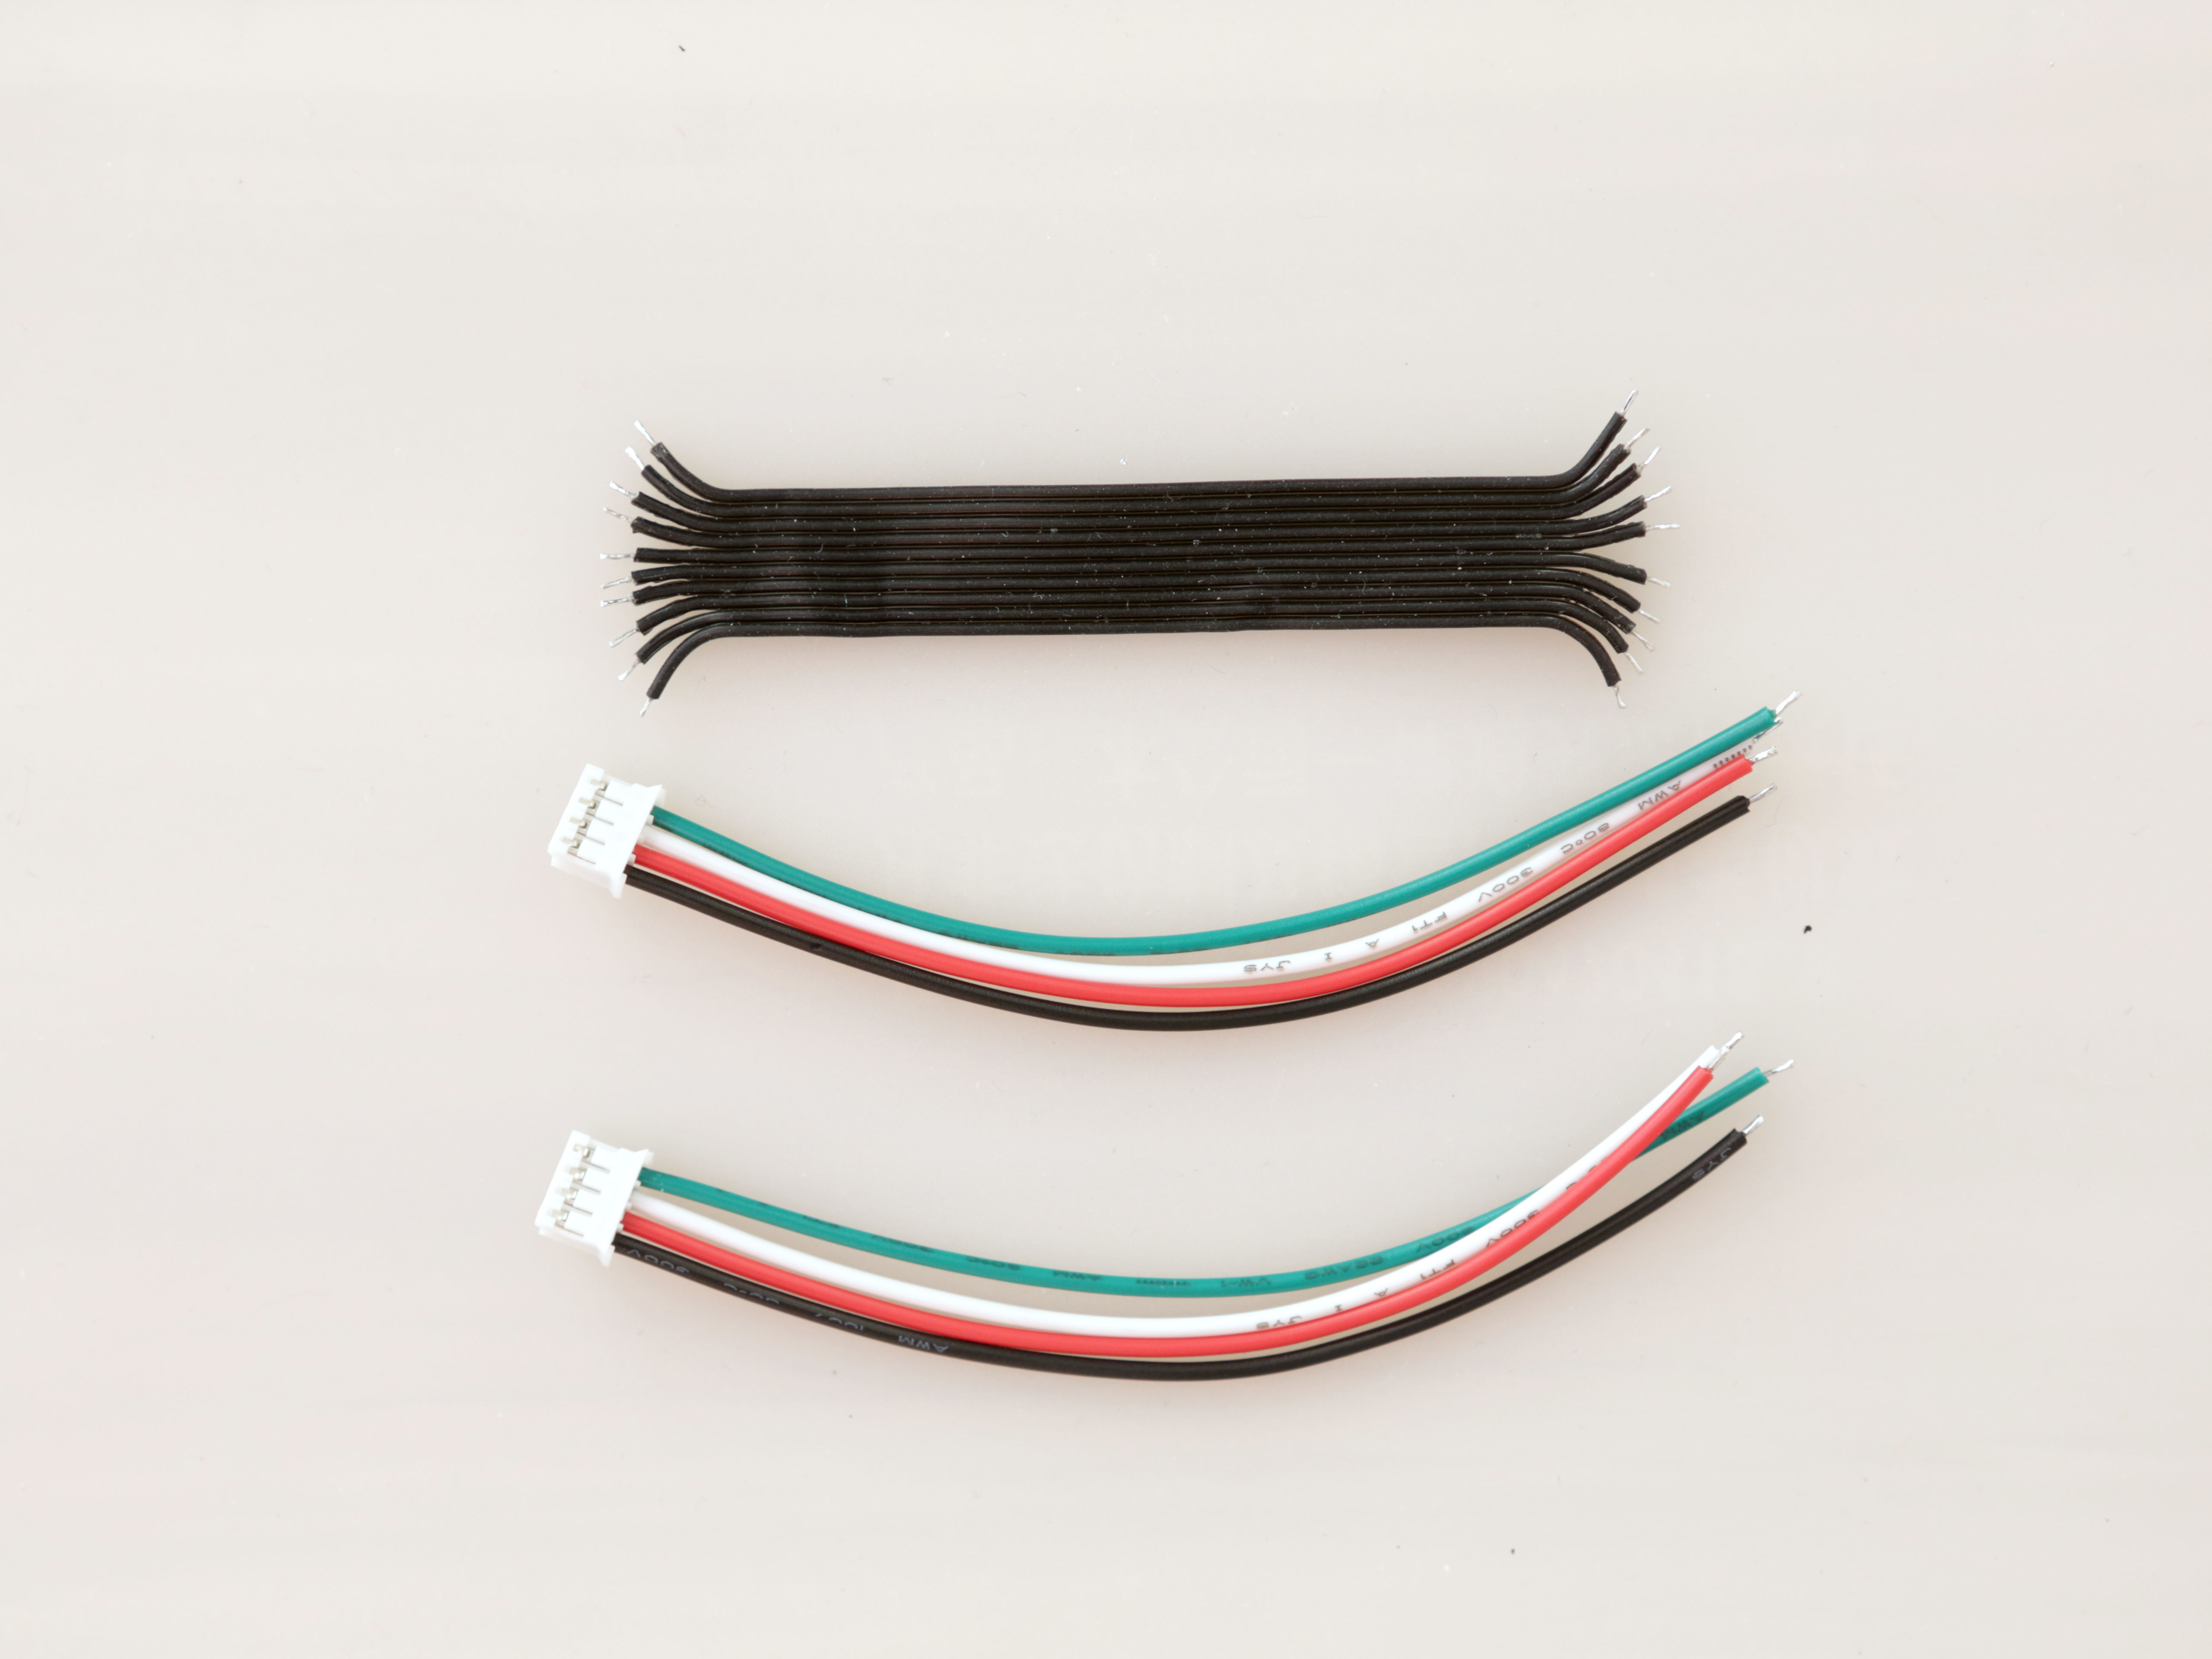 3d_printing_8sw-wires-tinned.jpg